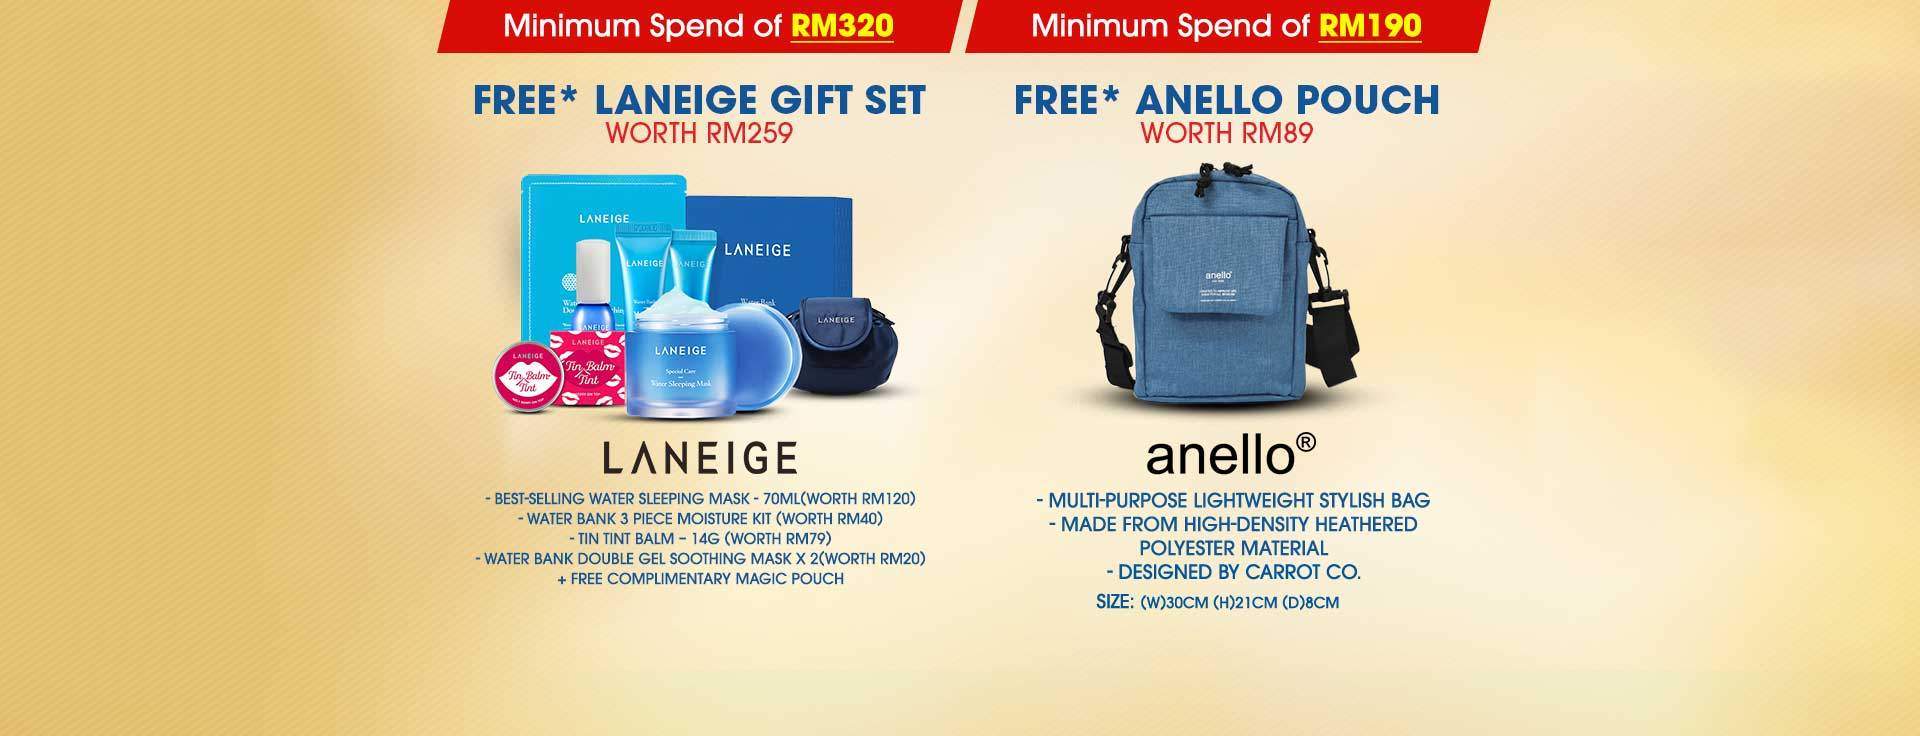 free laneige gift set or anello pouch